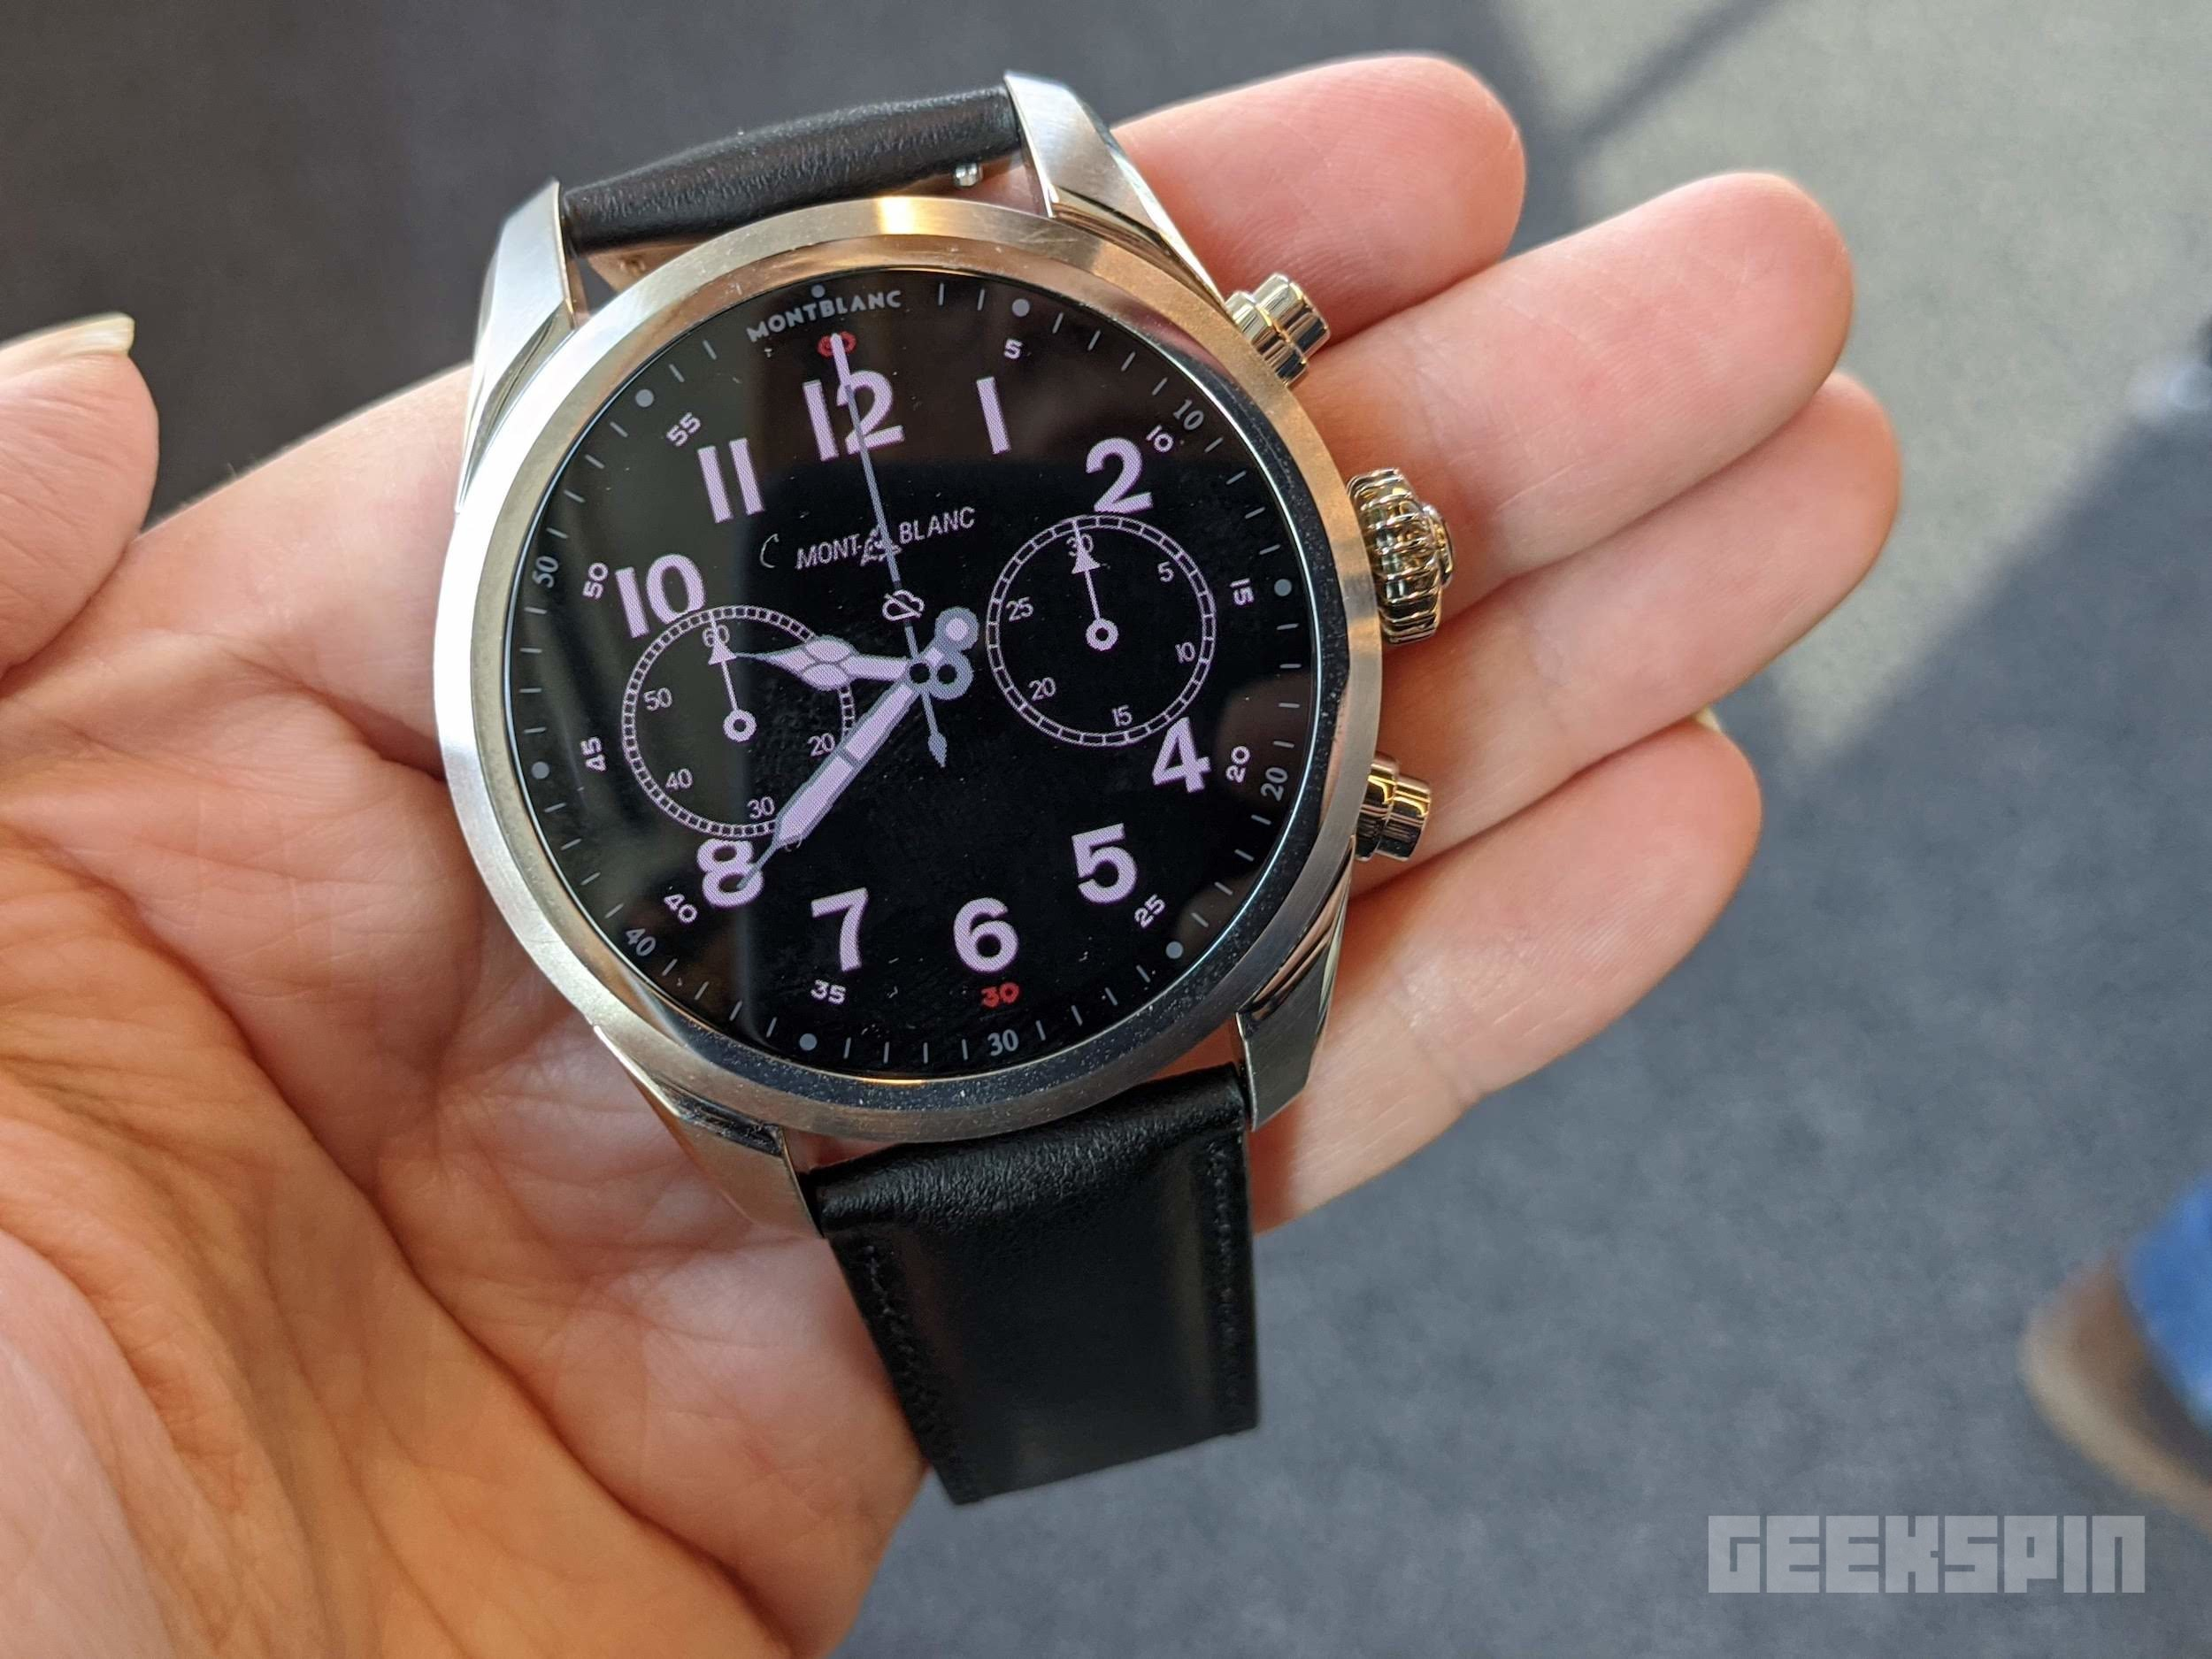 Montblanc's Summit 2+ is the first Wear OS smartwatch with LTE 14